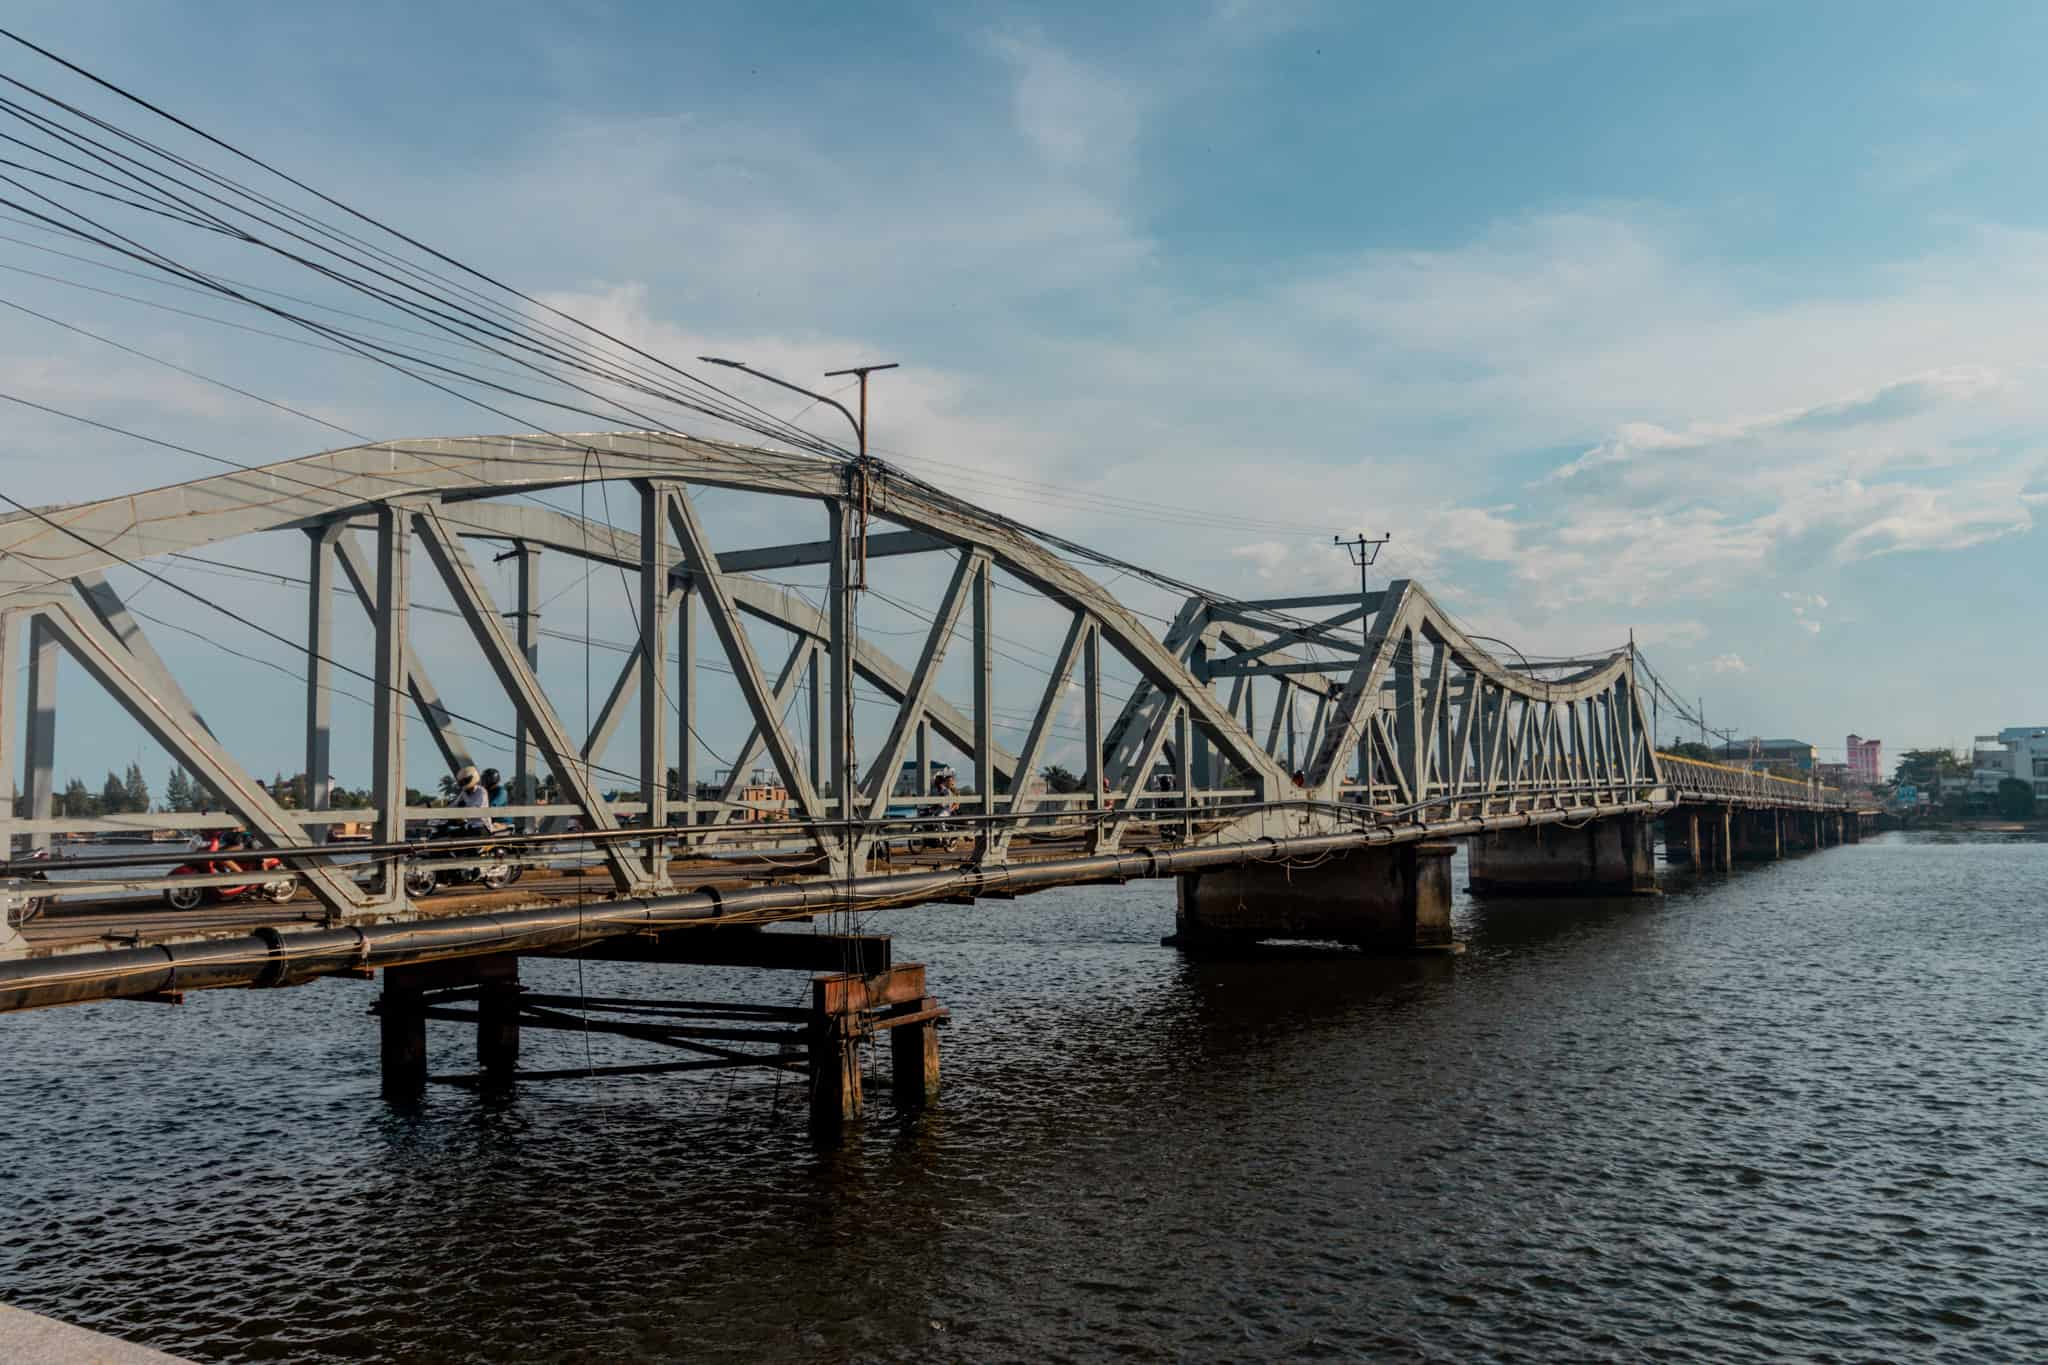 The Old French Bridge in Kampot, Cambodia